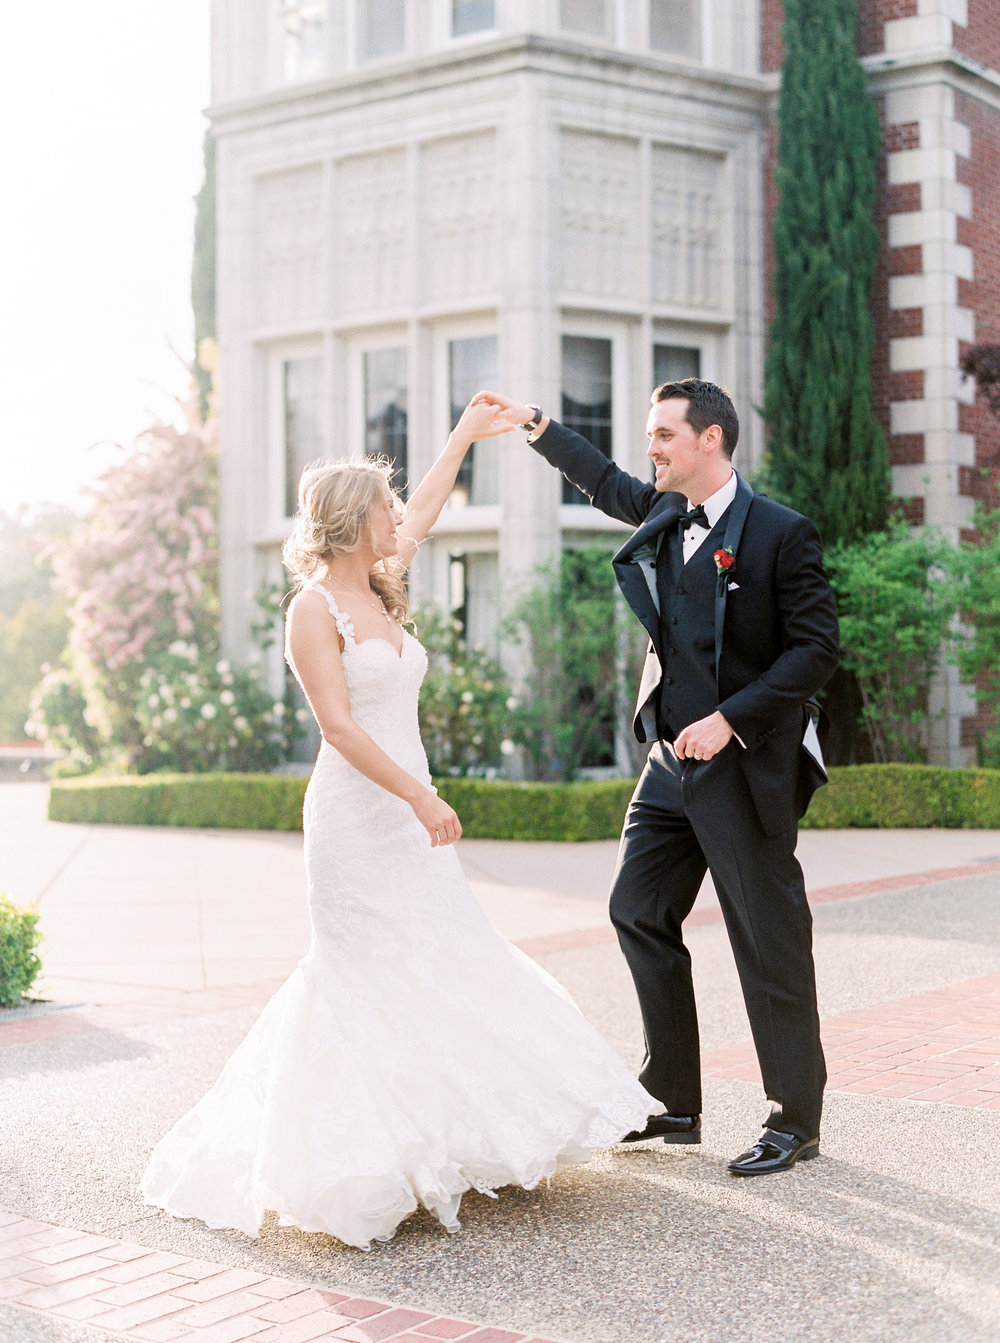 spring-inspired-wedding-at-kohl-mansion-burlingame-california-141.jpg